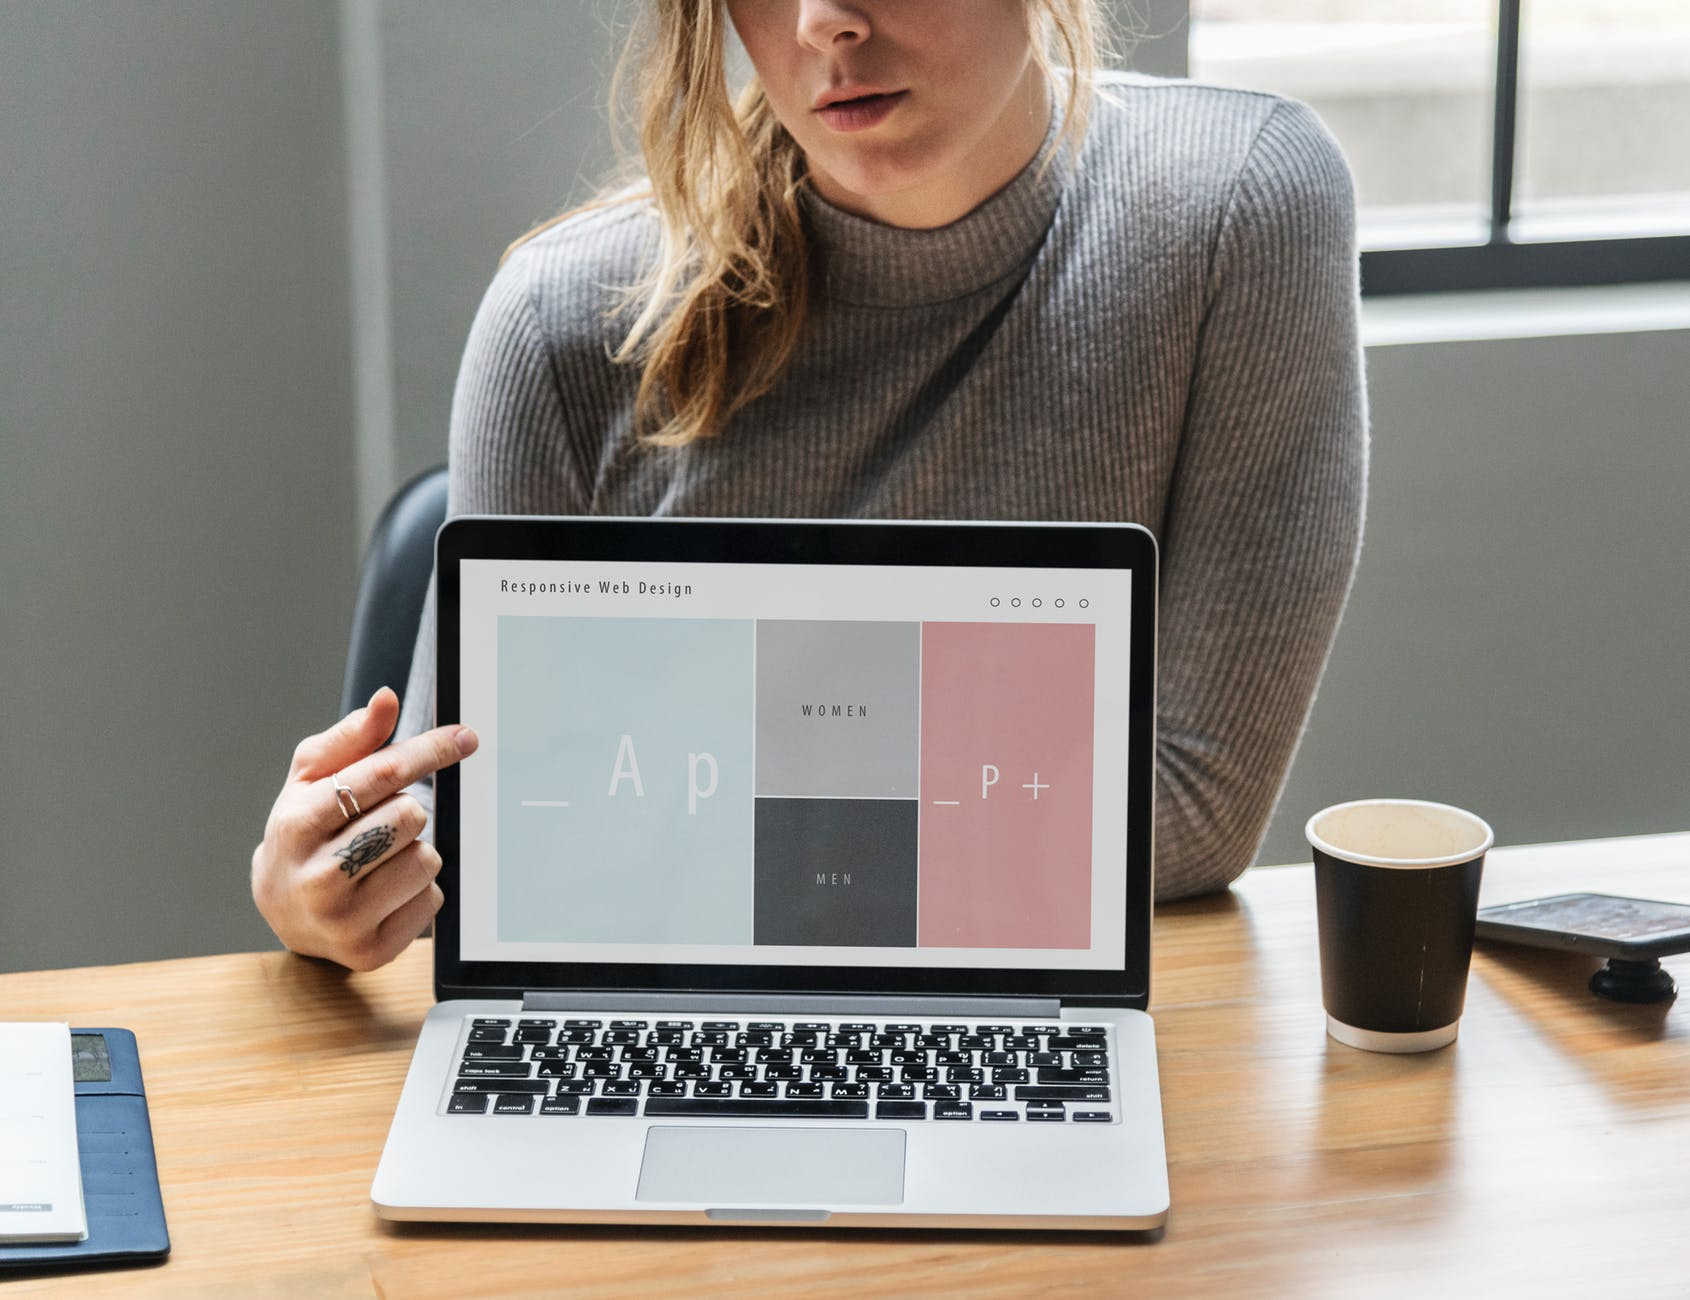 woman pointing at laptop s screen